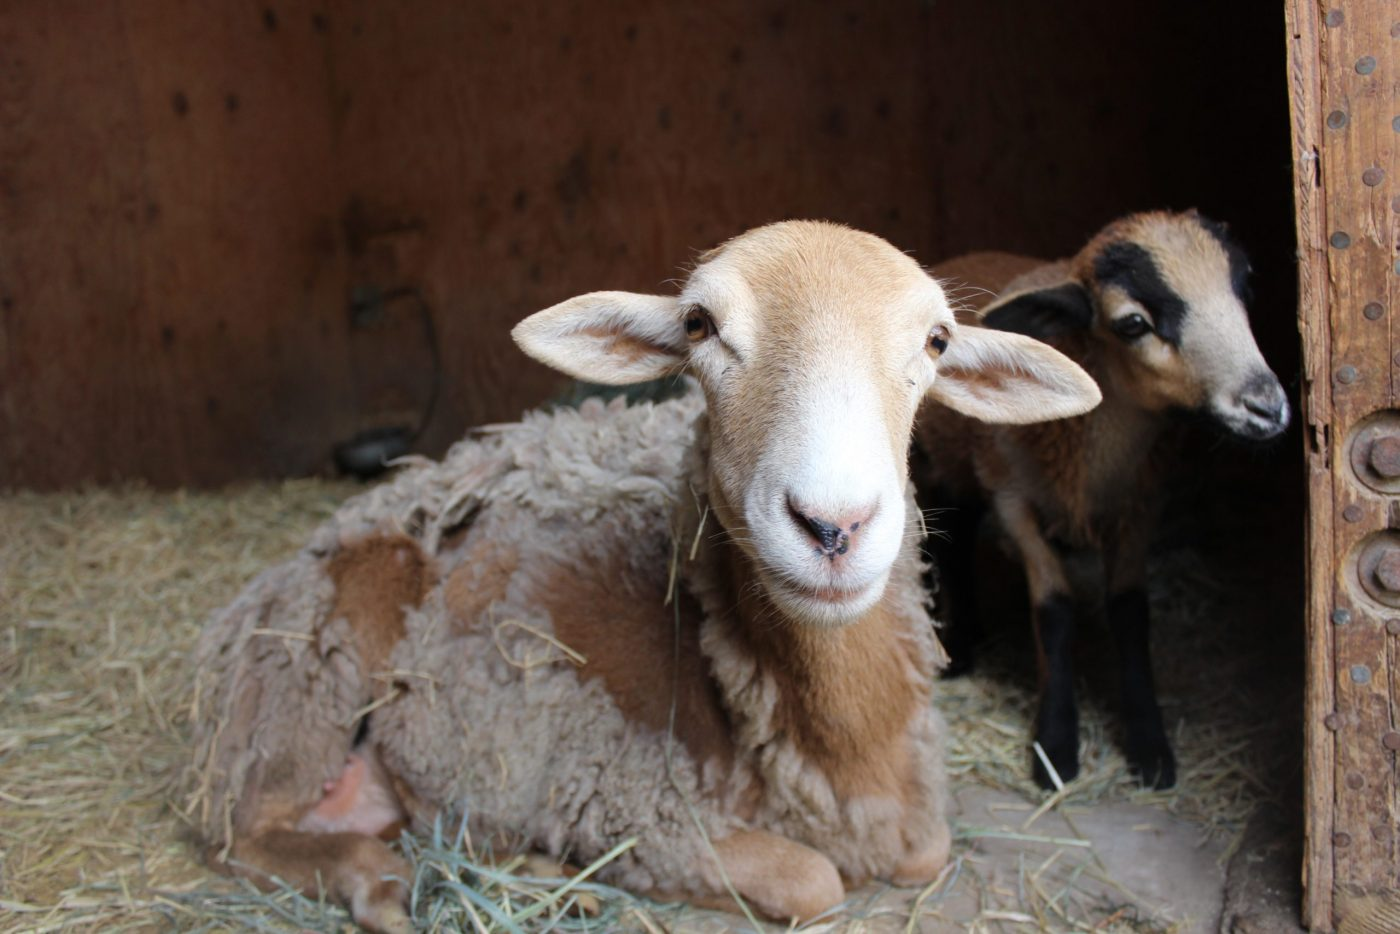 Katie sheep mother and Maple lamb at Farm Sanctuary